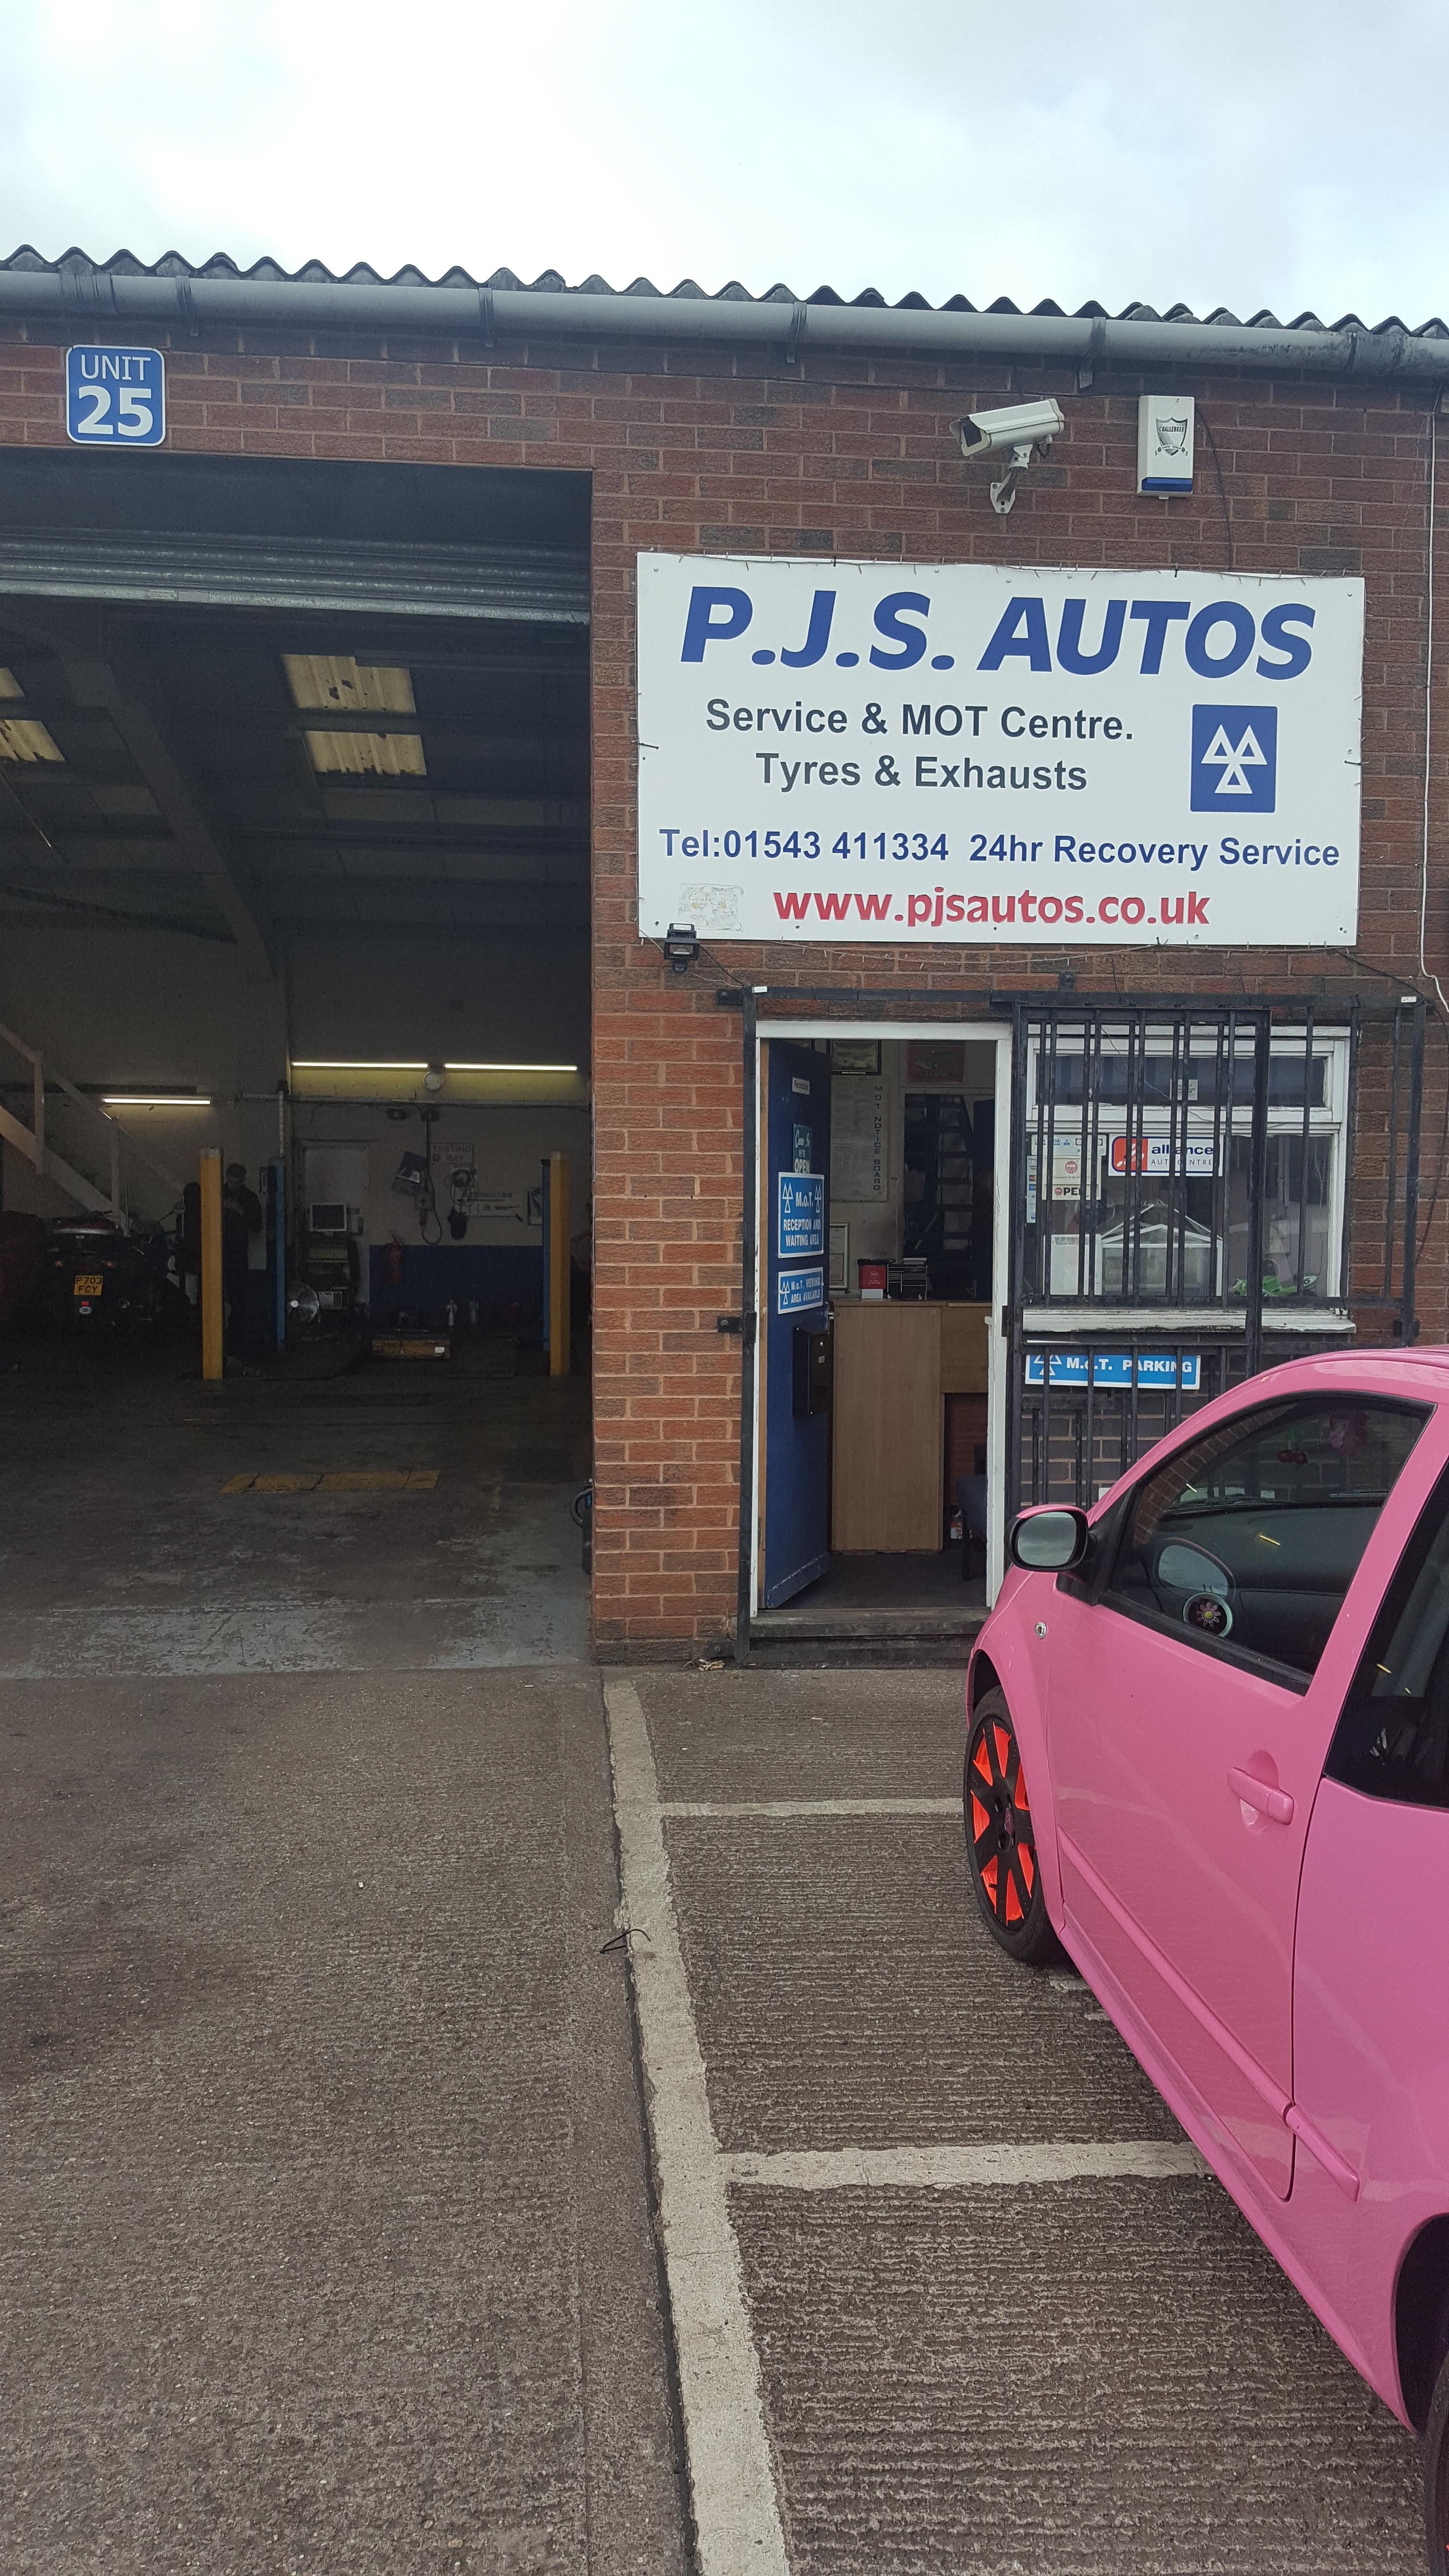 PJS AUTOS SERVICE AND MOT CENTRE